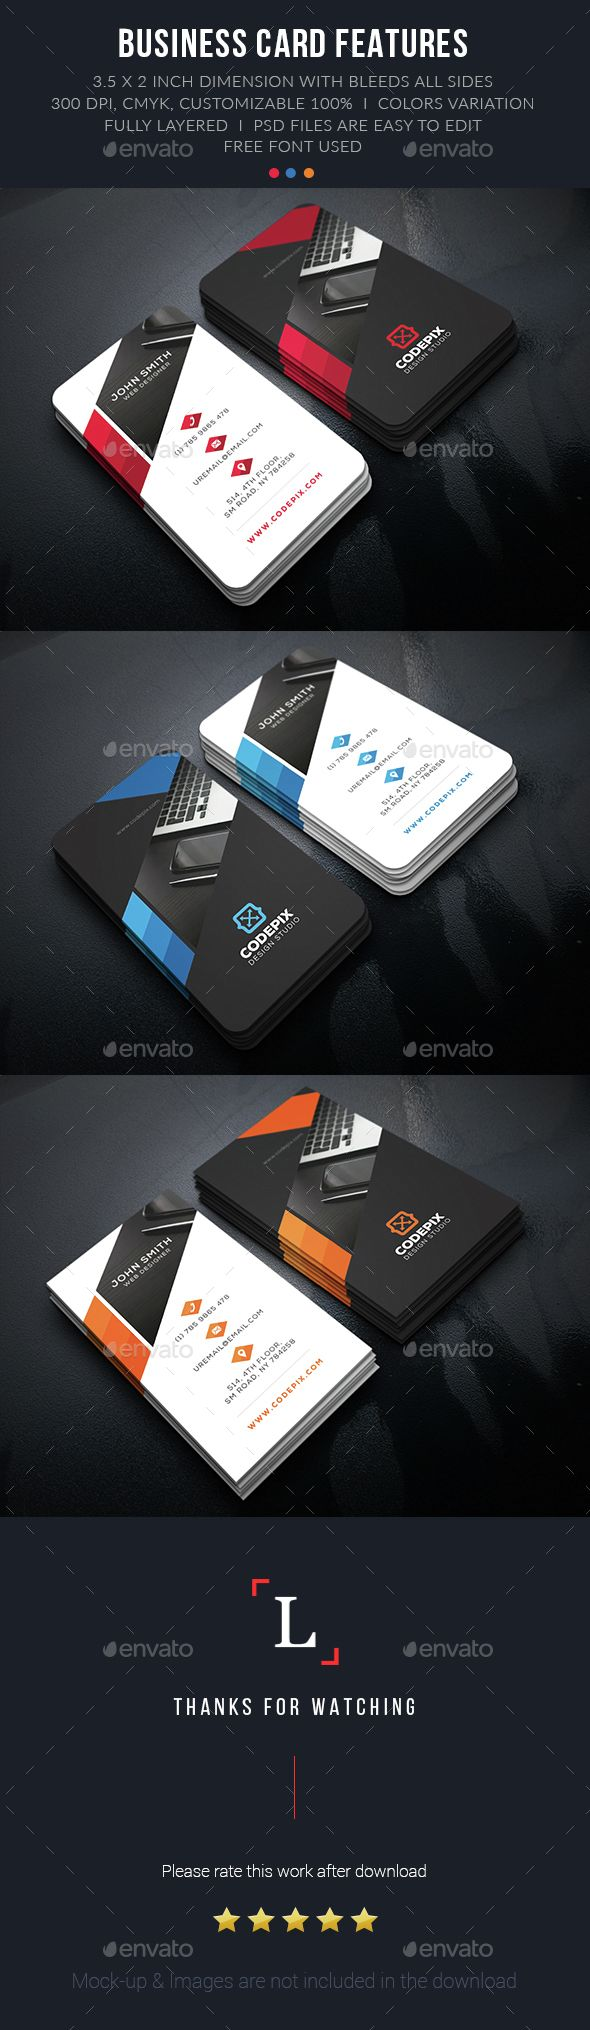 176 best Business card design images on Pinterest | Business card ...